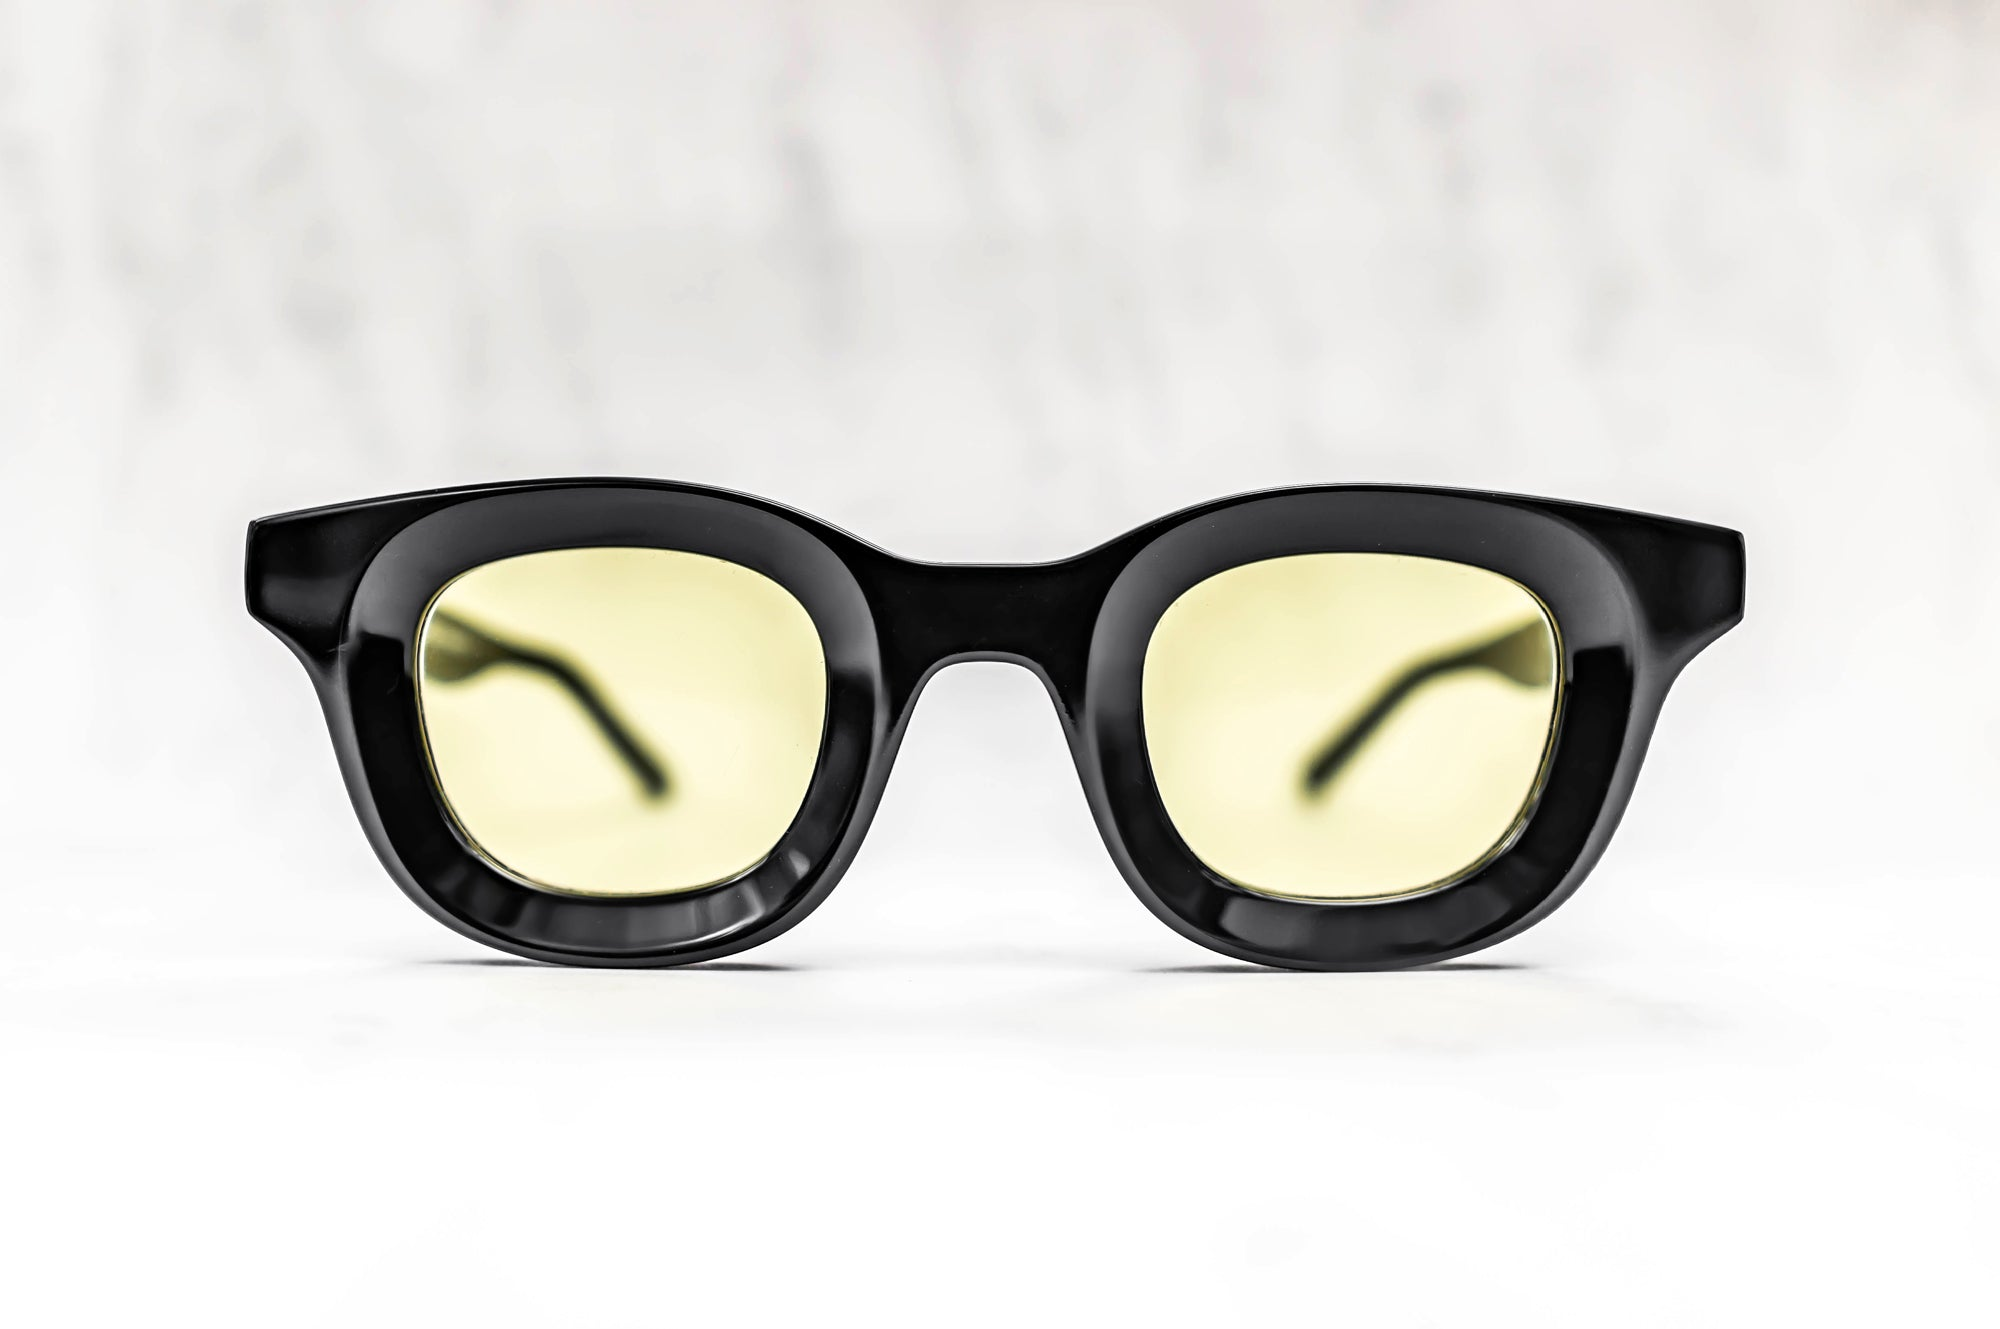 RHUDE x Thierry Lasry - Rhodeo Sunglasses in Black w/ Yellow Lenses (101)